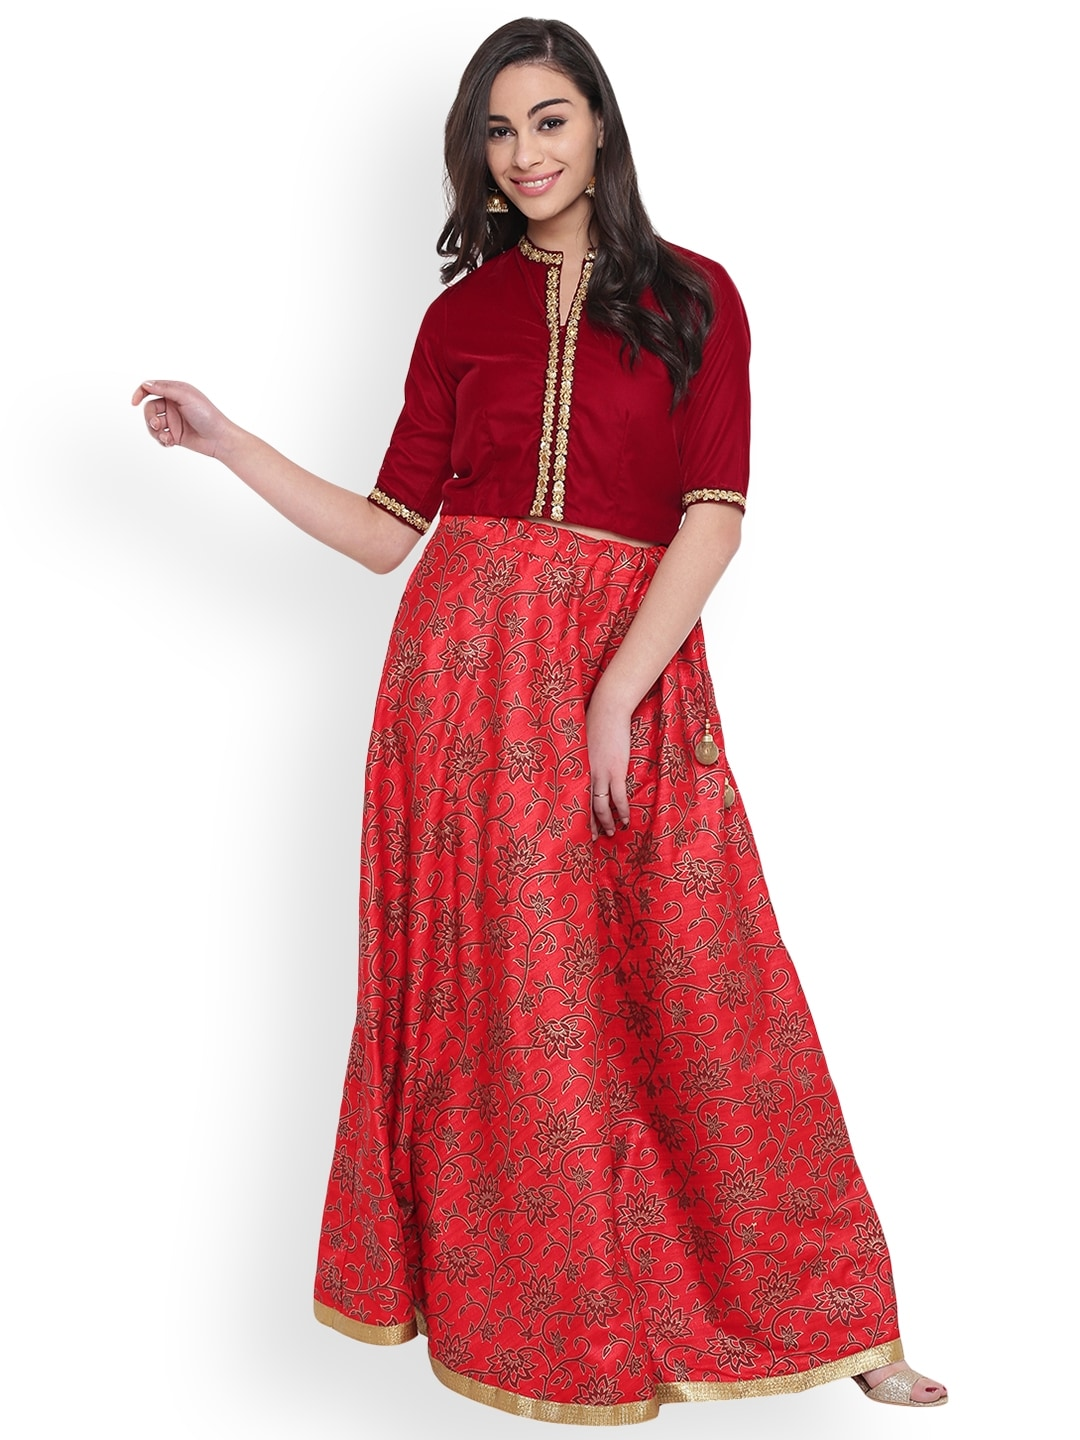 studio rasa Red Ready to Wear Hand Block Print Lehenga with Blouse image